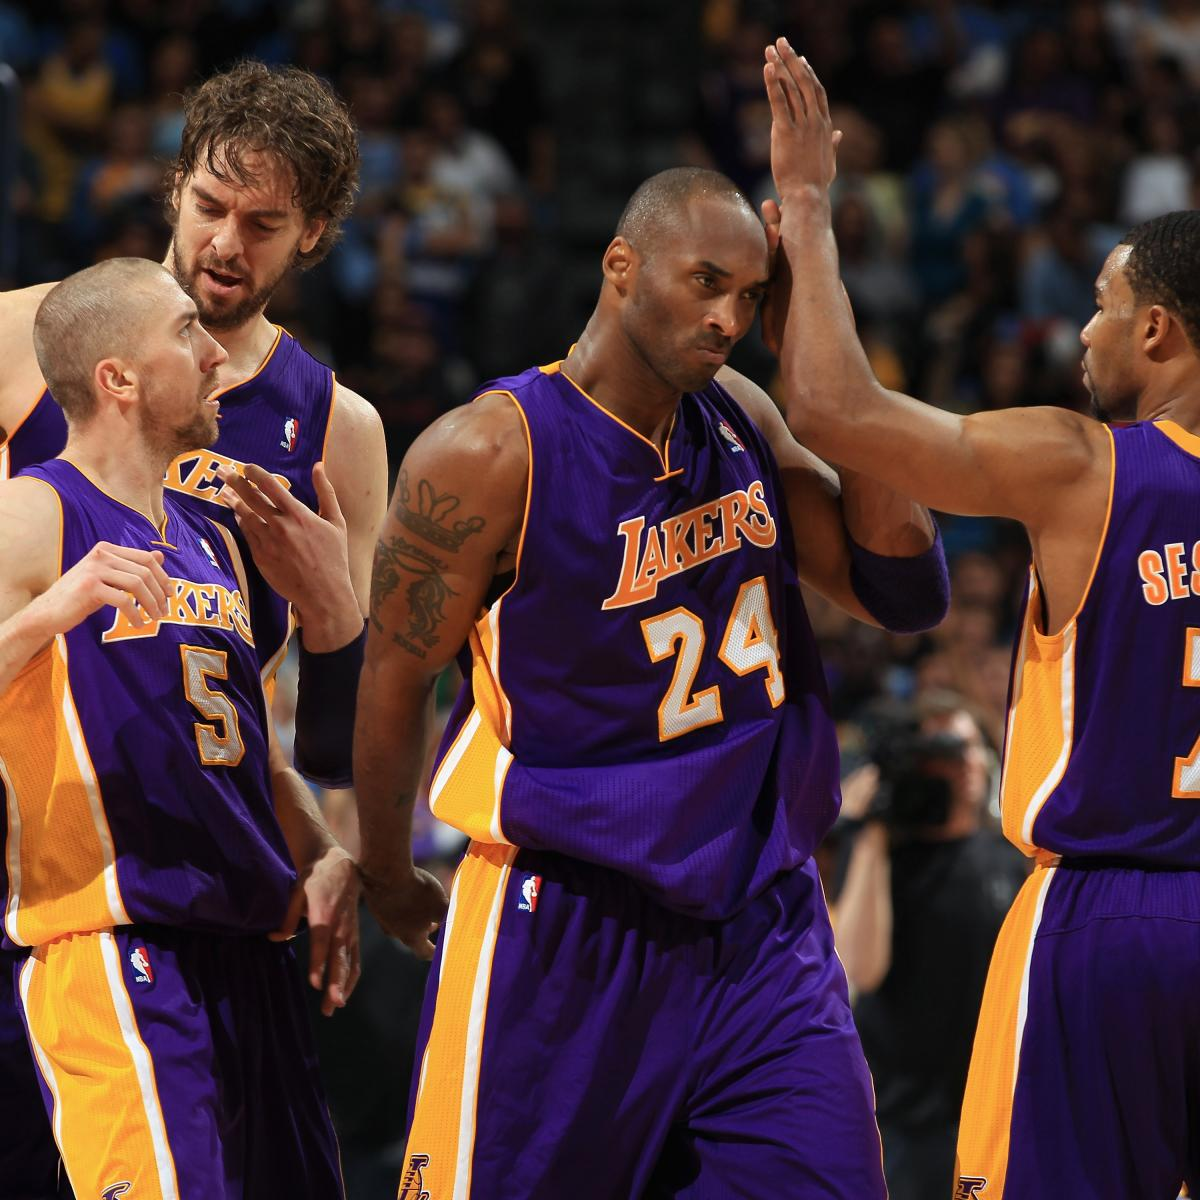 Lakers Vs. Nuggets: Game 4 Highlights, Twitter Reaction